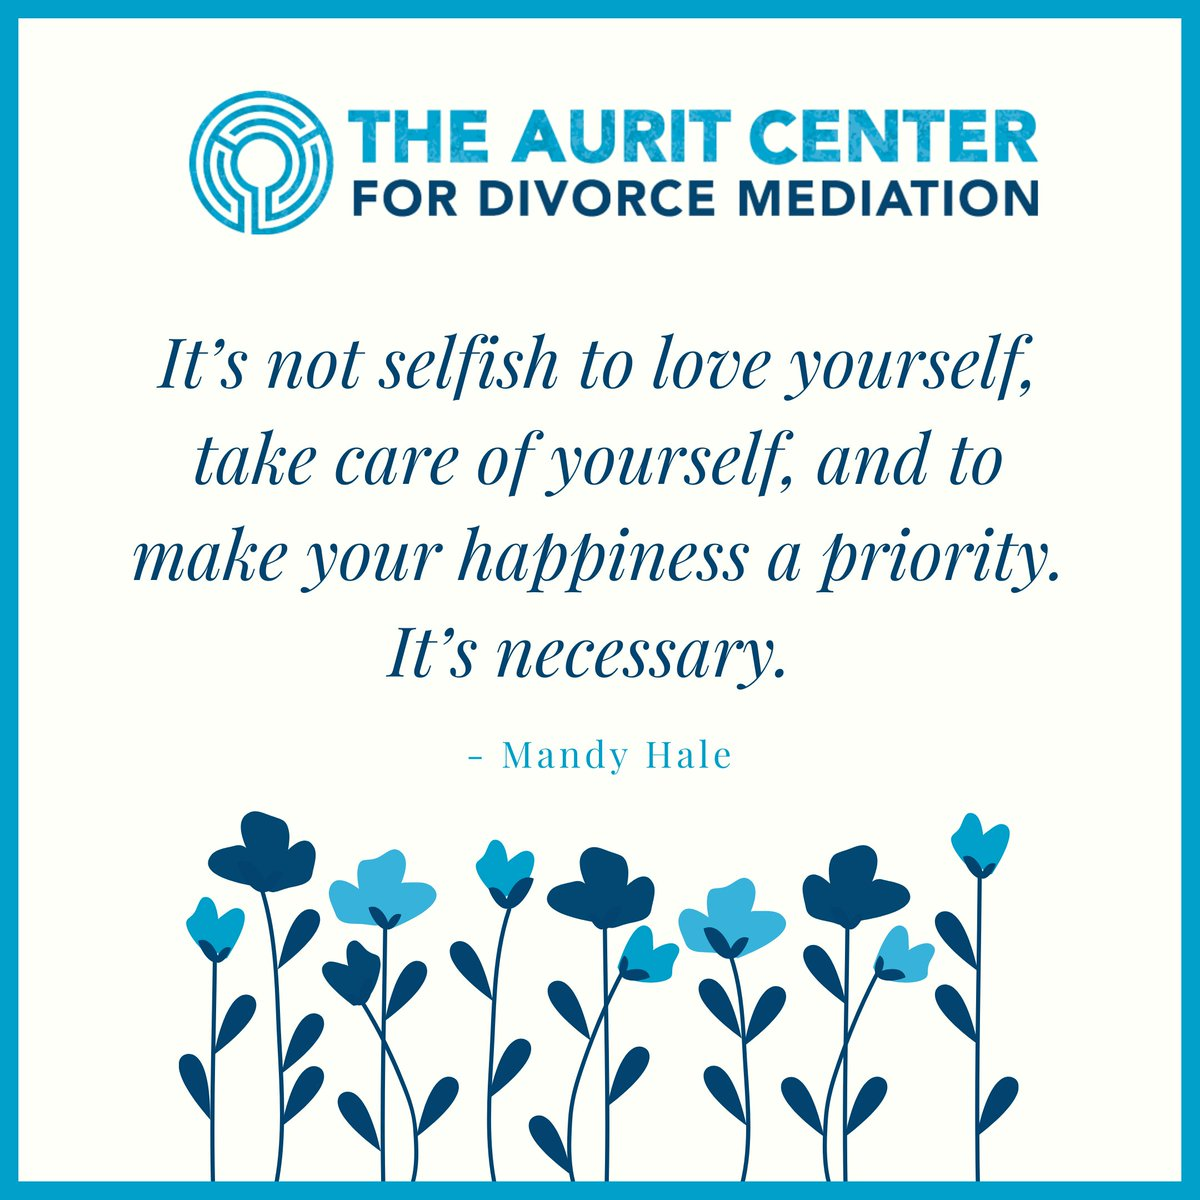 Remember to take care of yourself. It is necessary, and you are worth it.  #healthydivorce #mediation #divorcemediation #online #onlinemediation #family #selfcare #selflove #take #care #happiness #priority #necessary #breathe #deserve #wecare #quote #love #worth #it https://t.co/fBDkW2cPTm